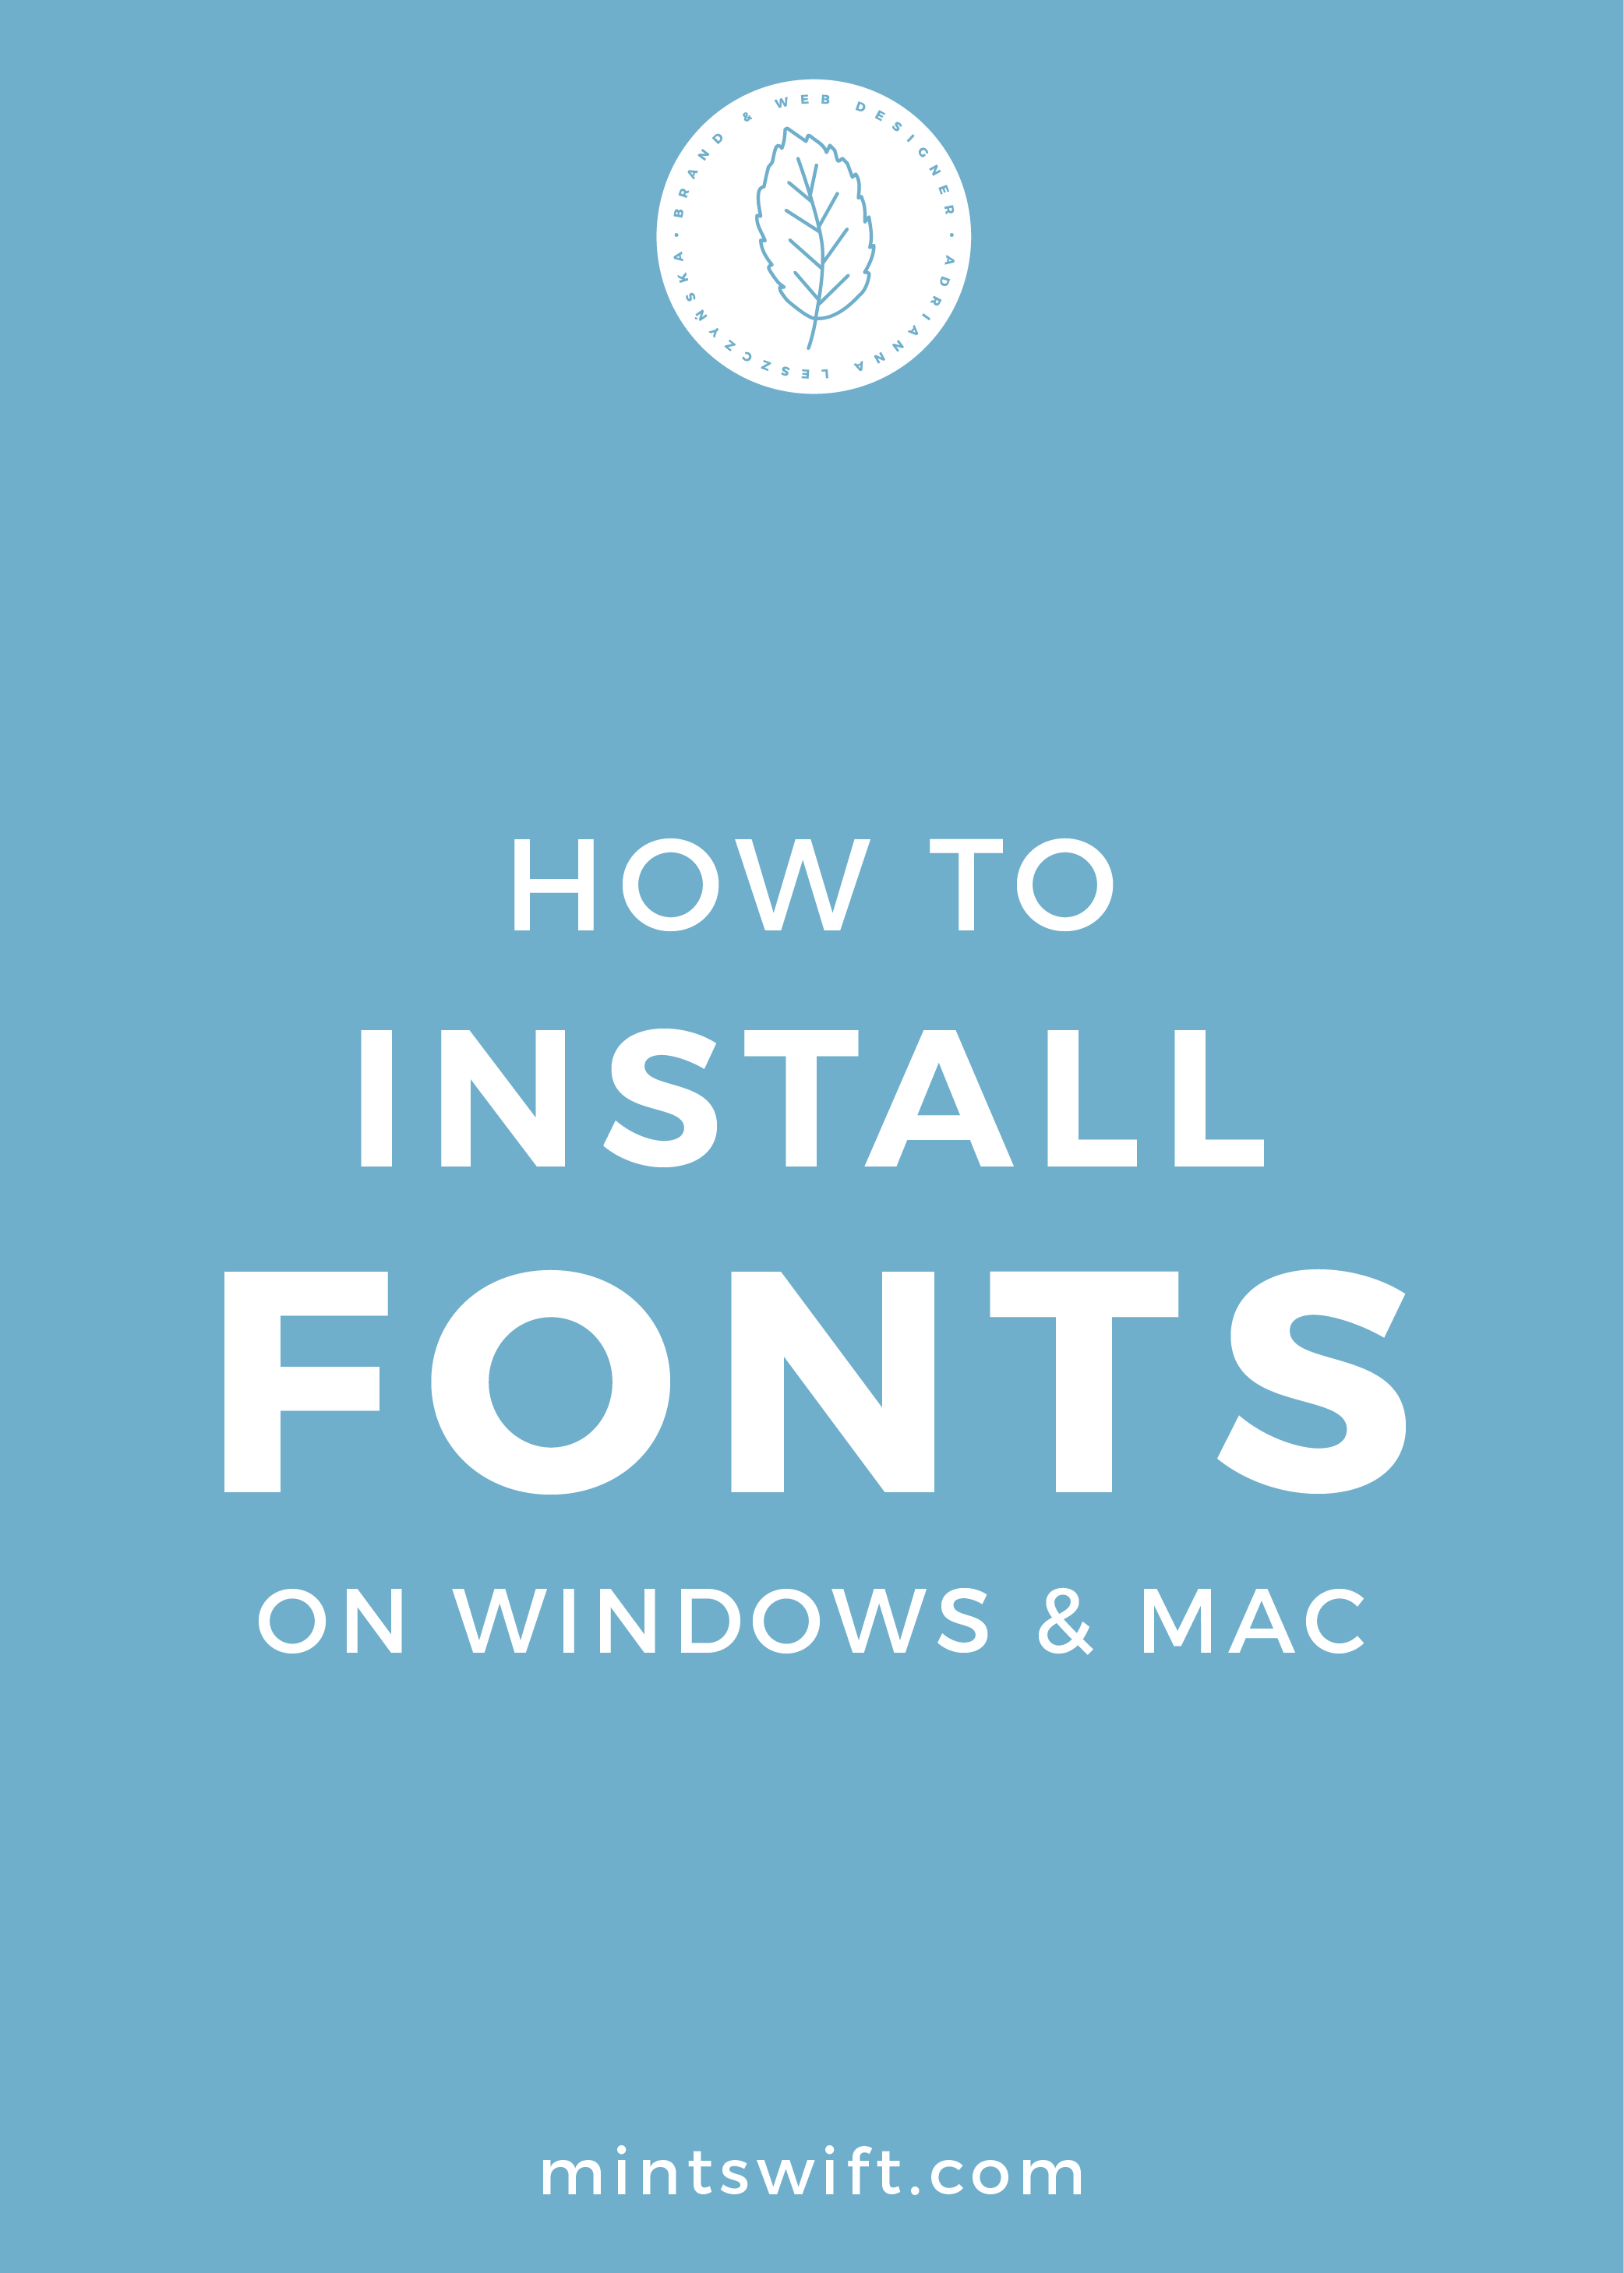 How to Install Fonts on Windows & Mac - MintSwift